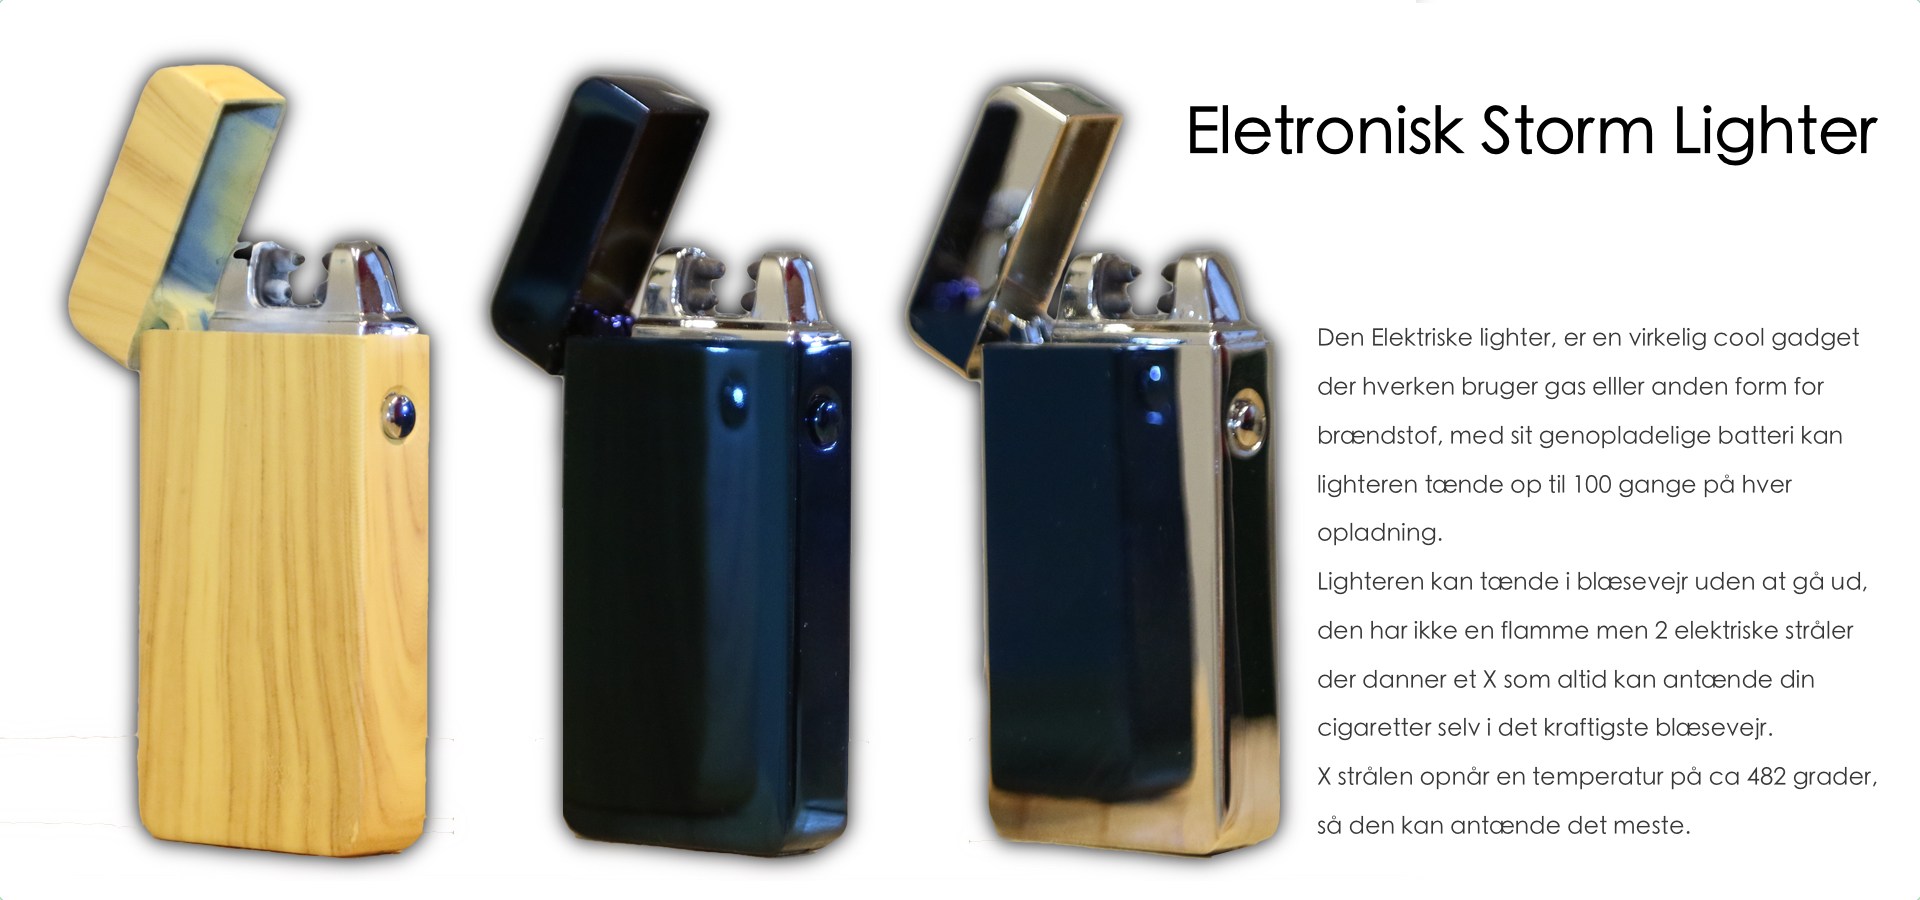 Eletronisk Storm Lighter